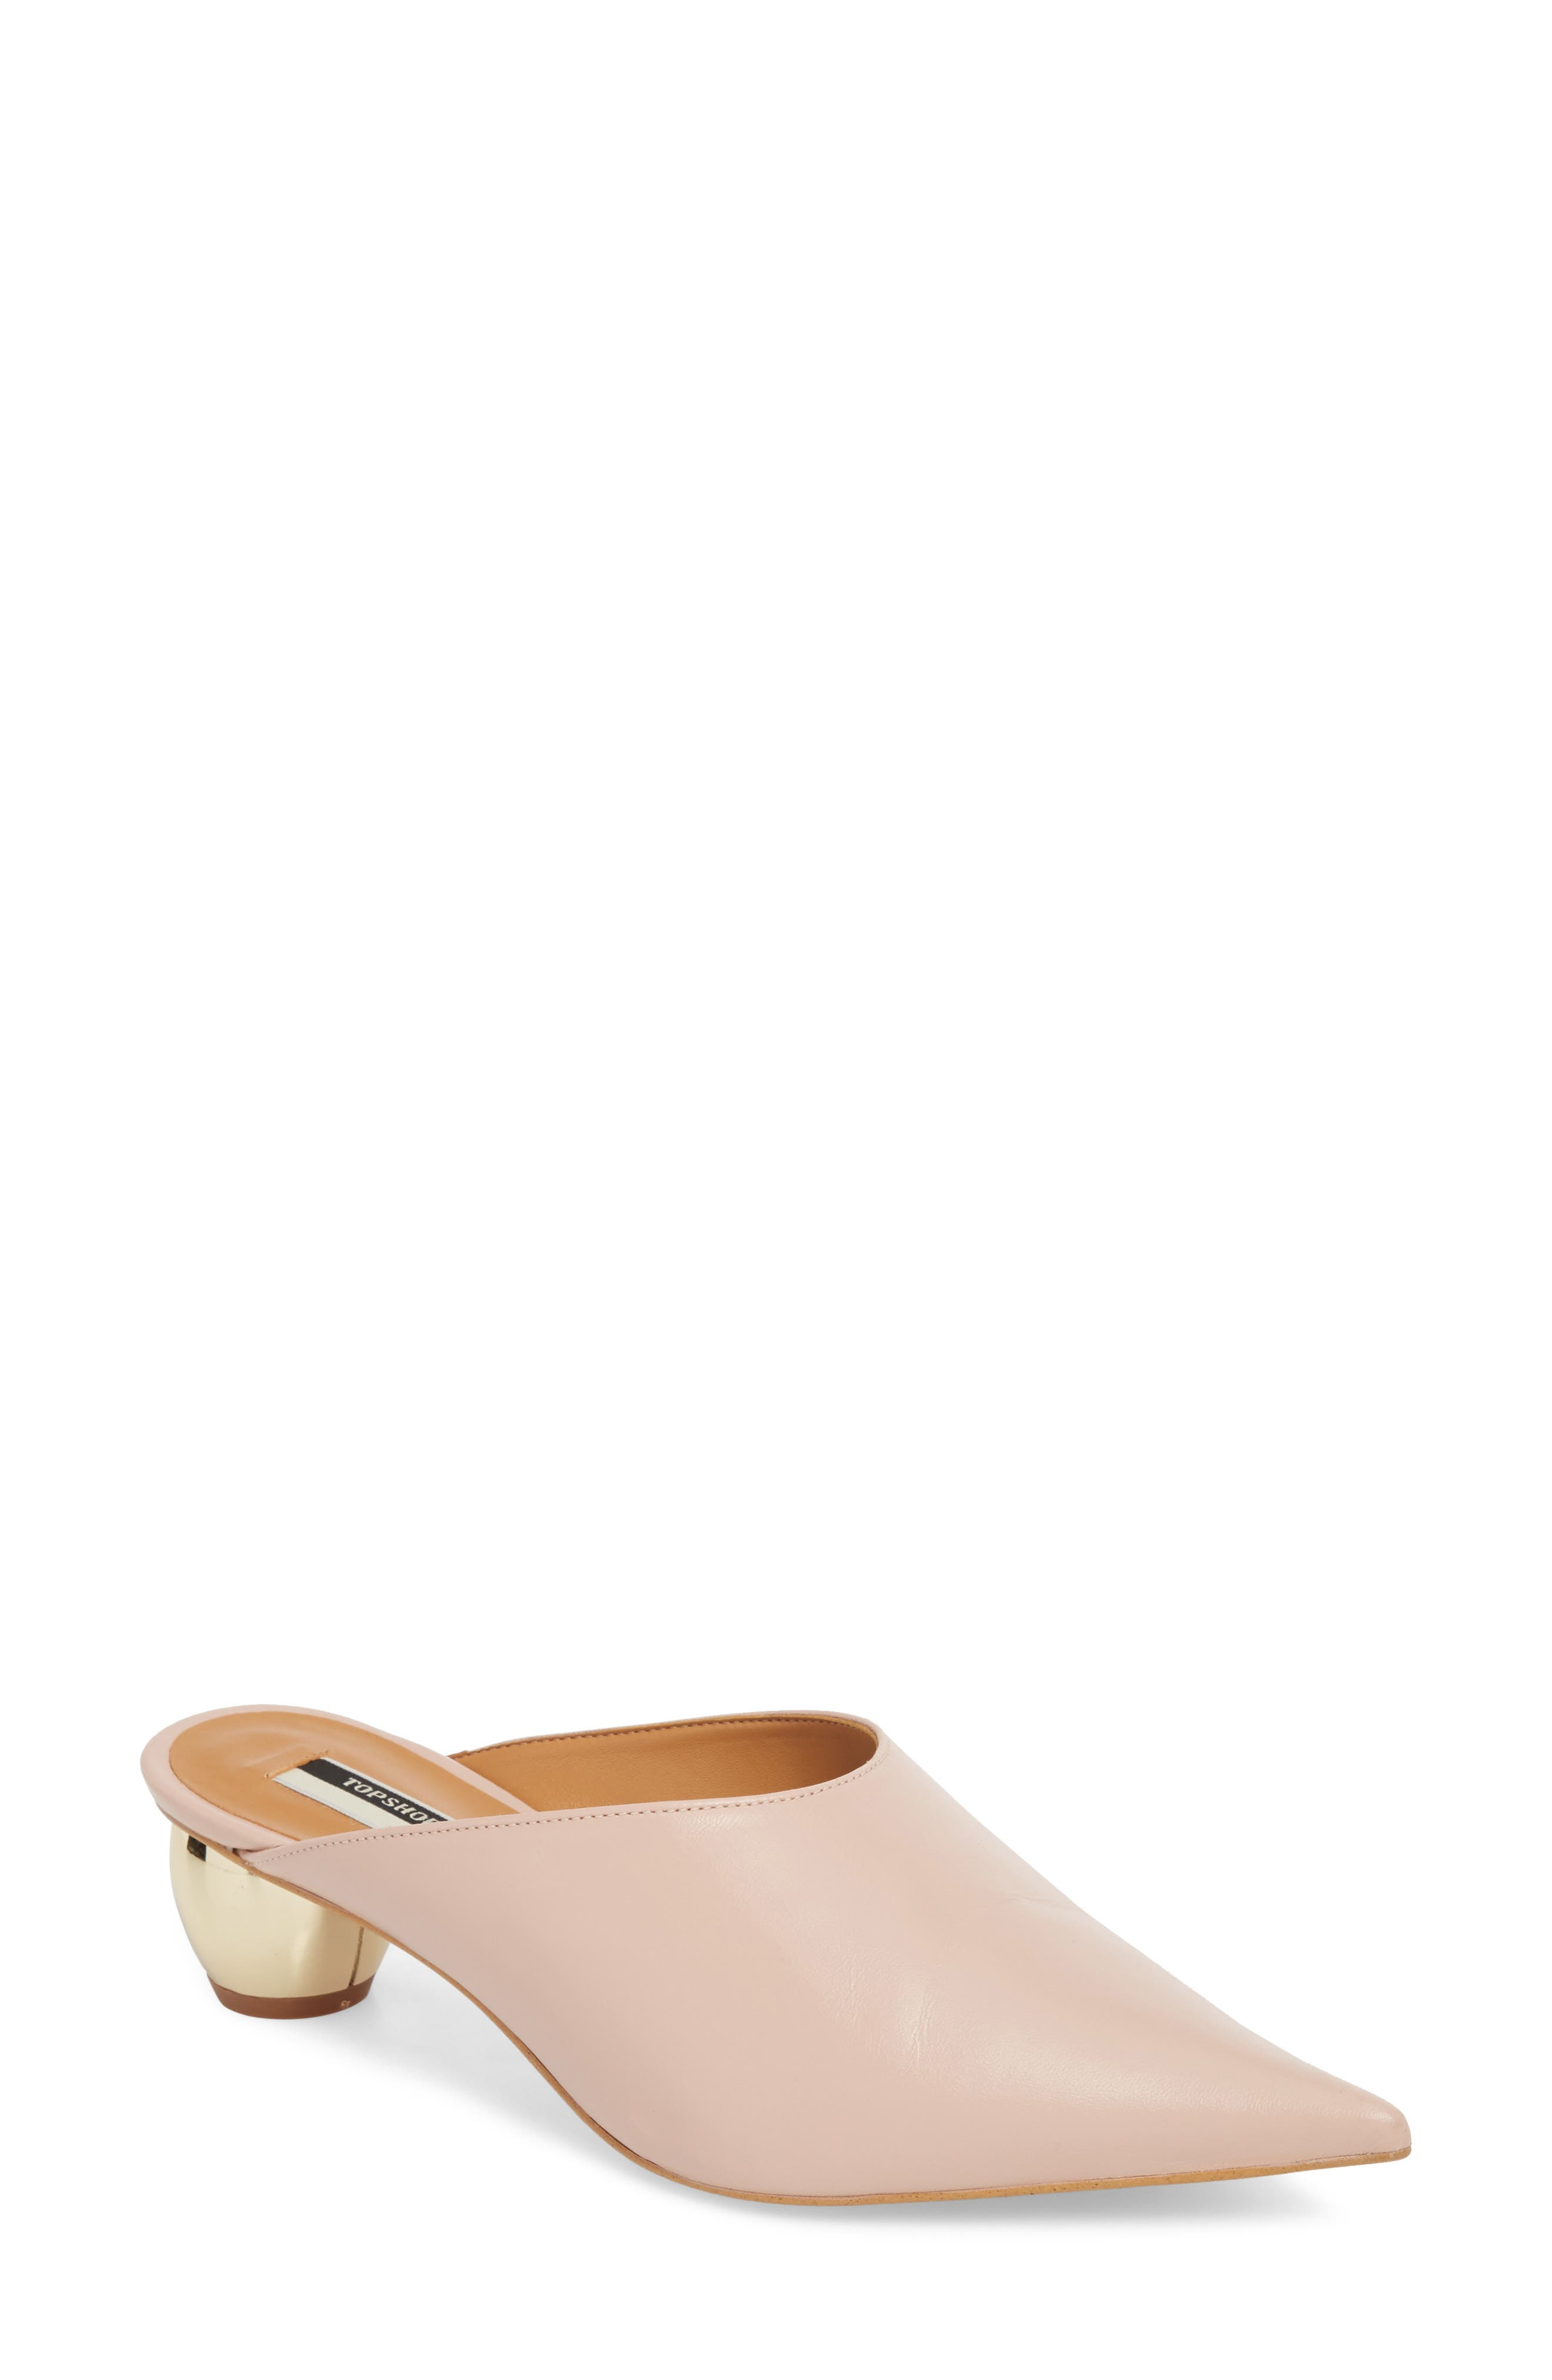 Juniper Ball Heel Mule,                         Main,                         color, Light Pink